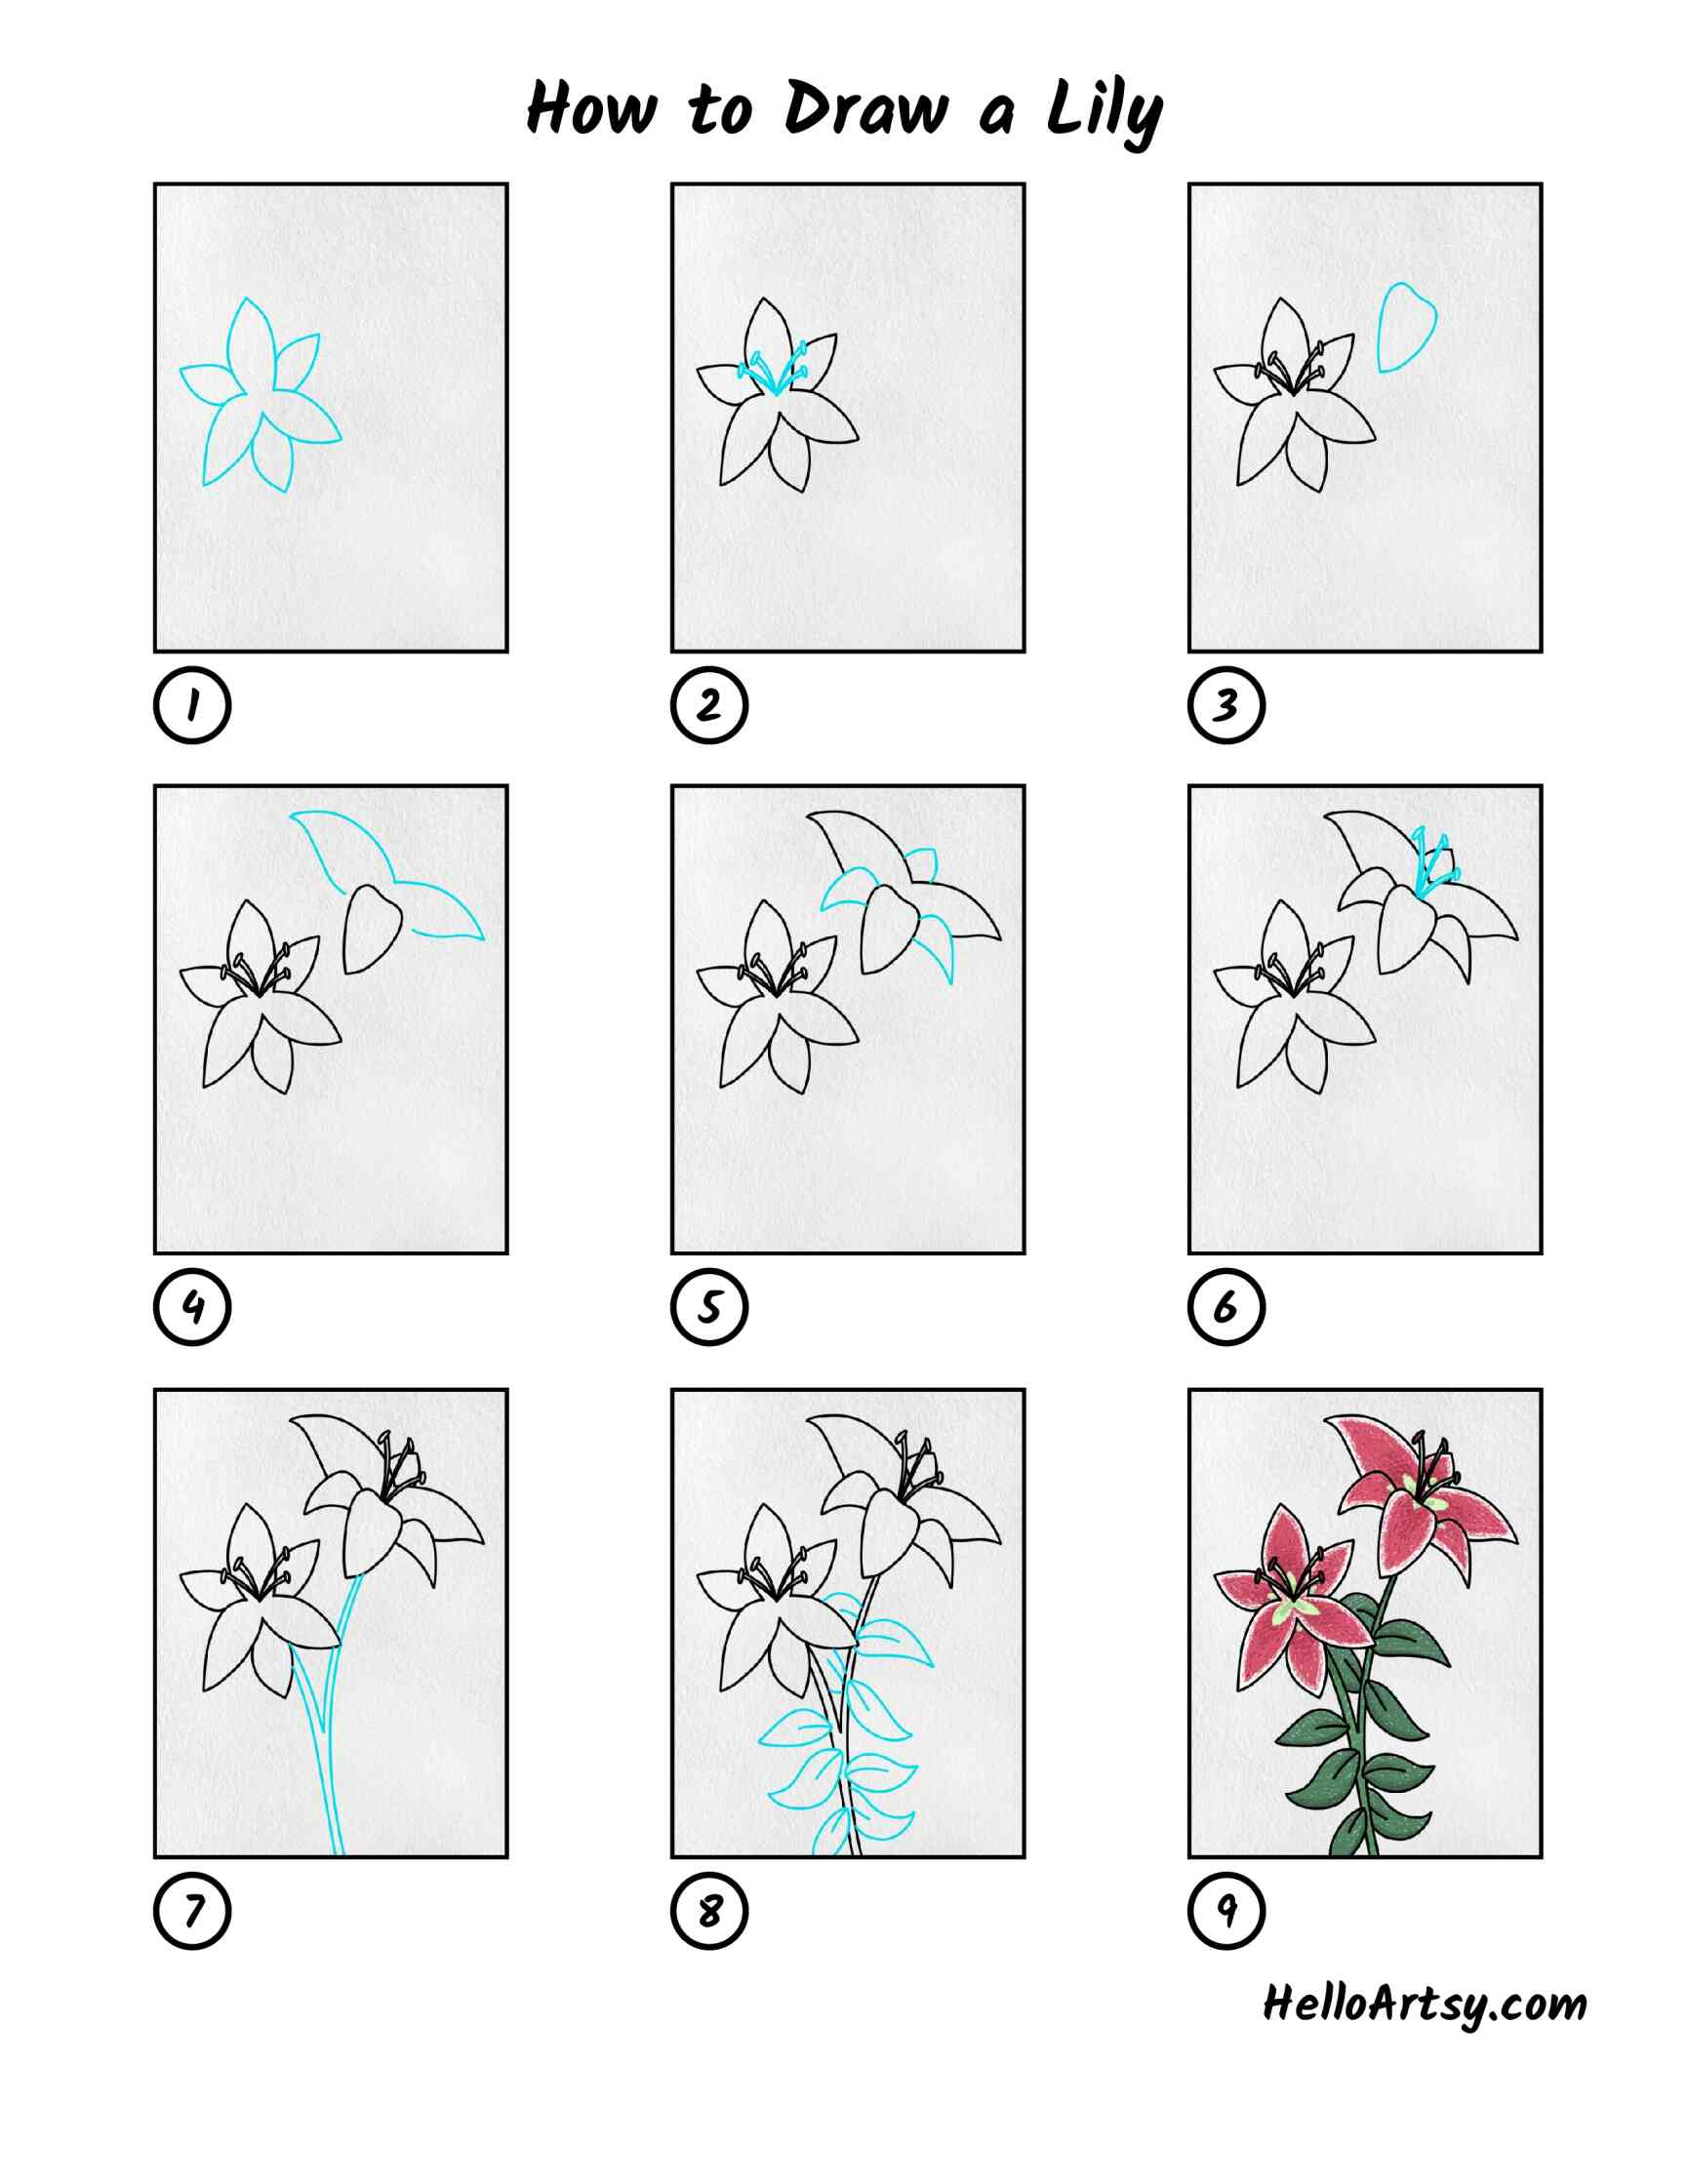 How To Draw A Lily: All Steps